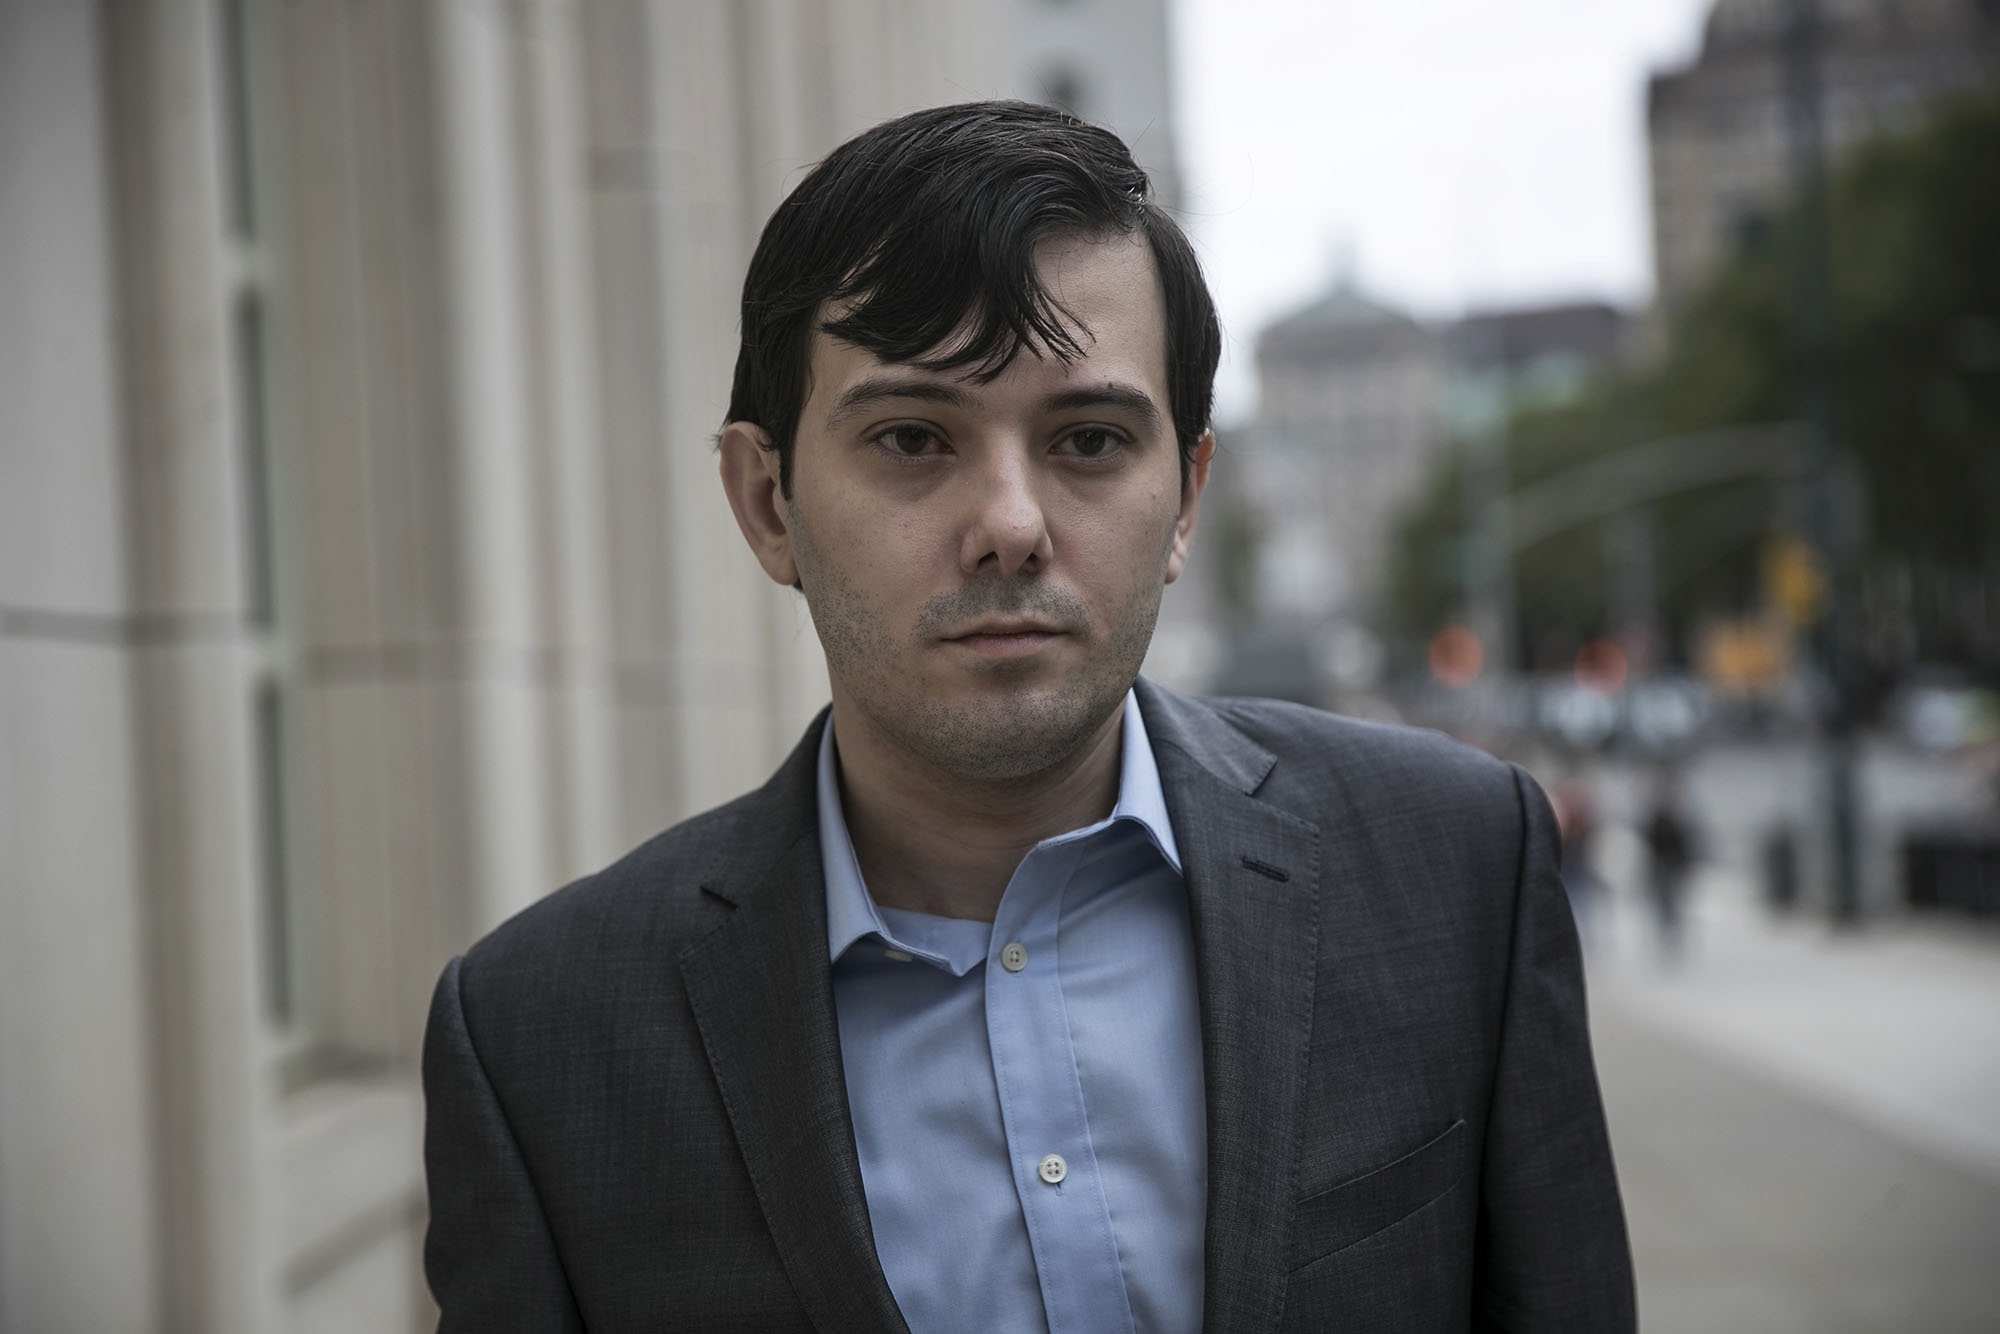 Martin Shkreli, former chief executive officer for Turing Pharmaceuticals AG, arrives at Federal Court in Brooklyn, New York, U.S, on Thursday, July 14, 2016. (Photographer: Victor J. Blue/Bloomberg via Getty Images)